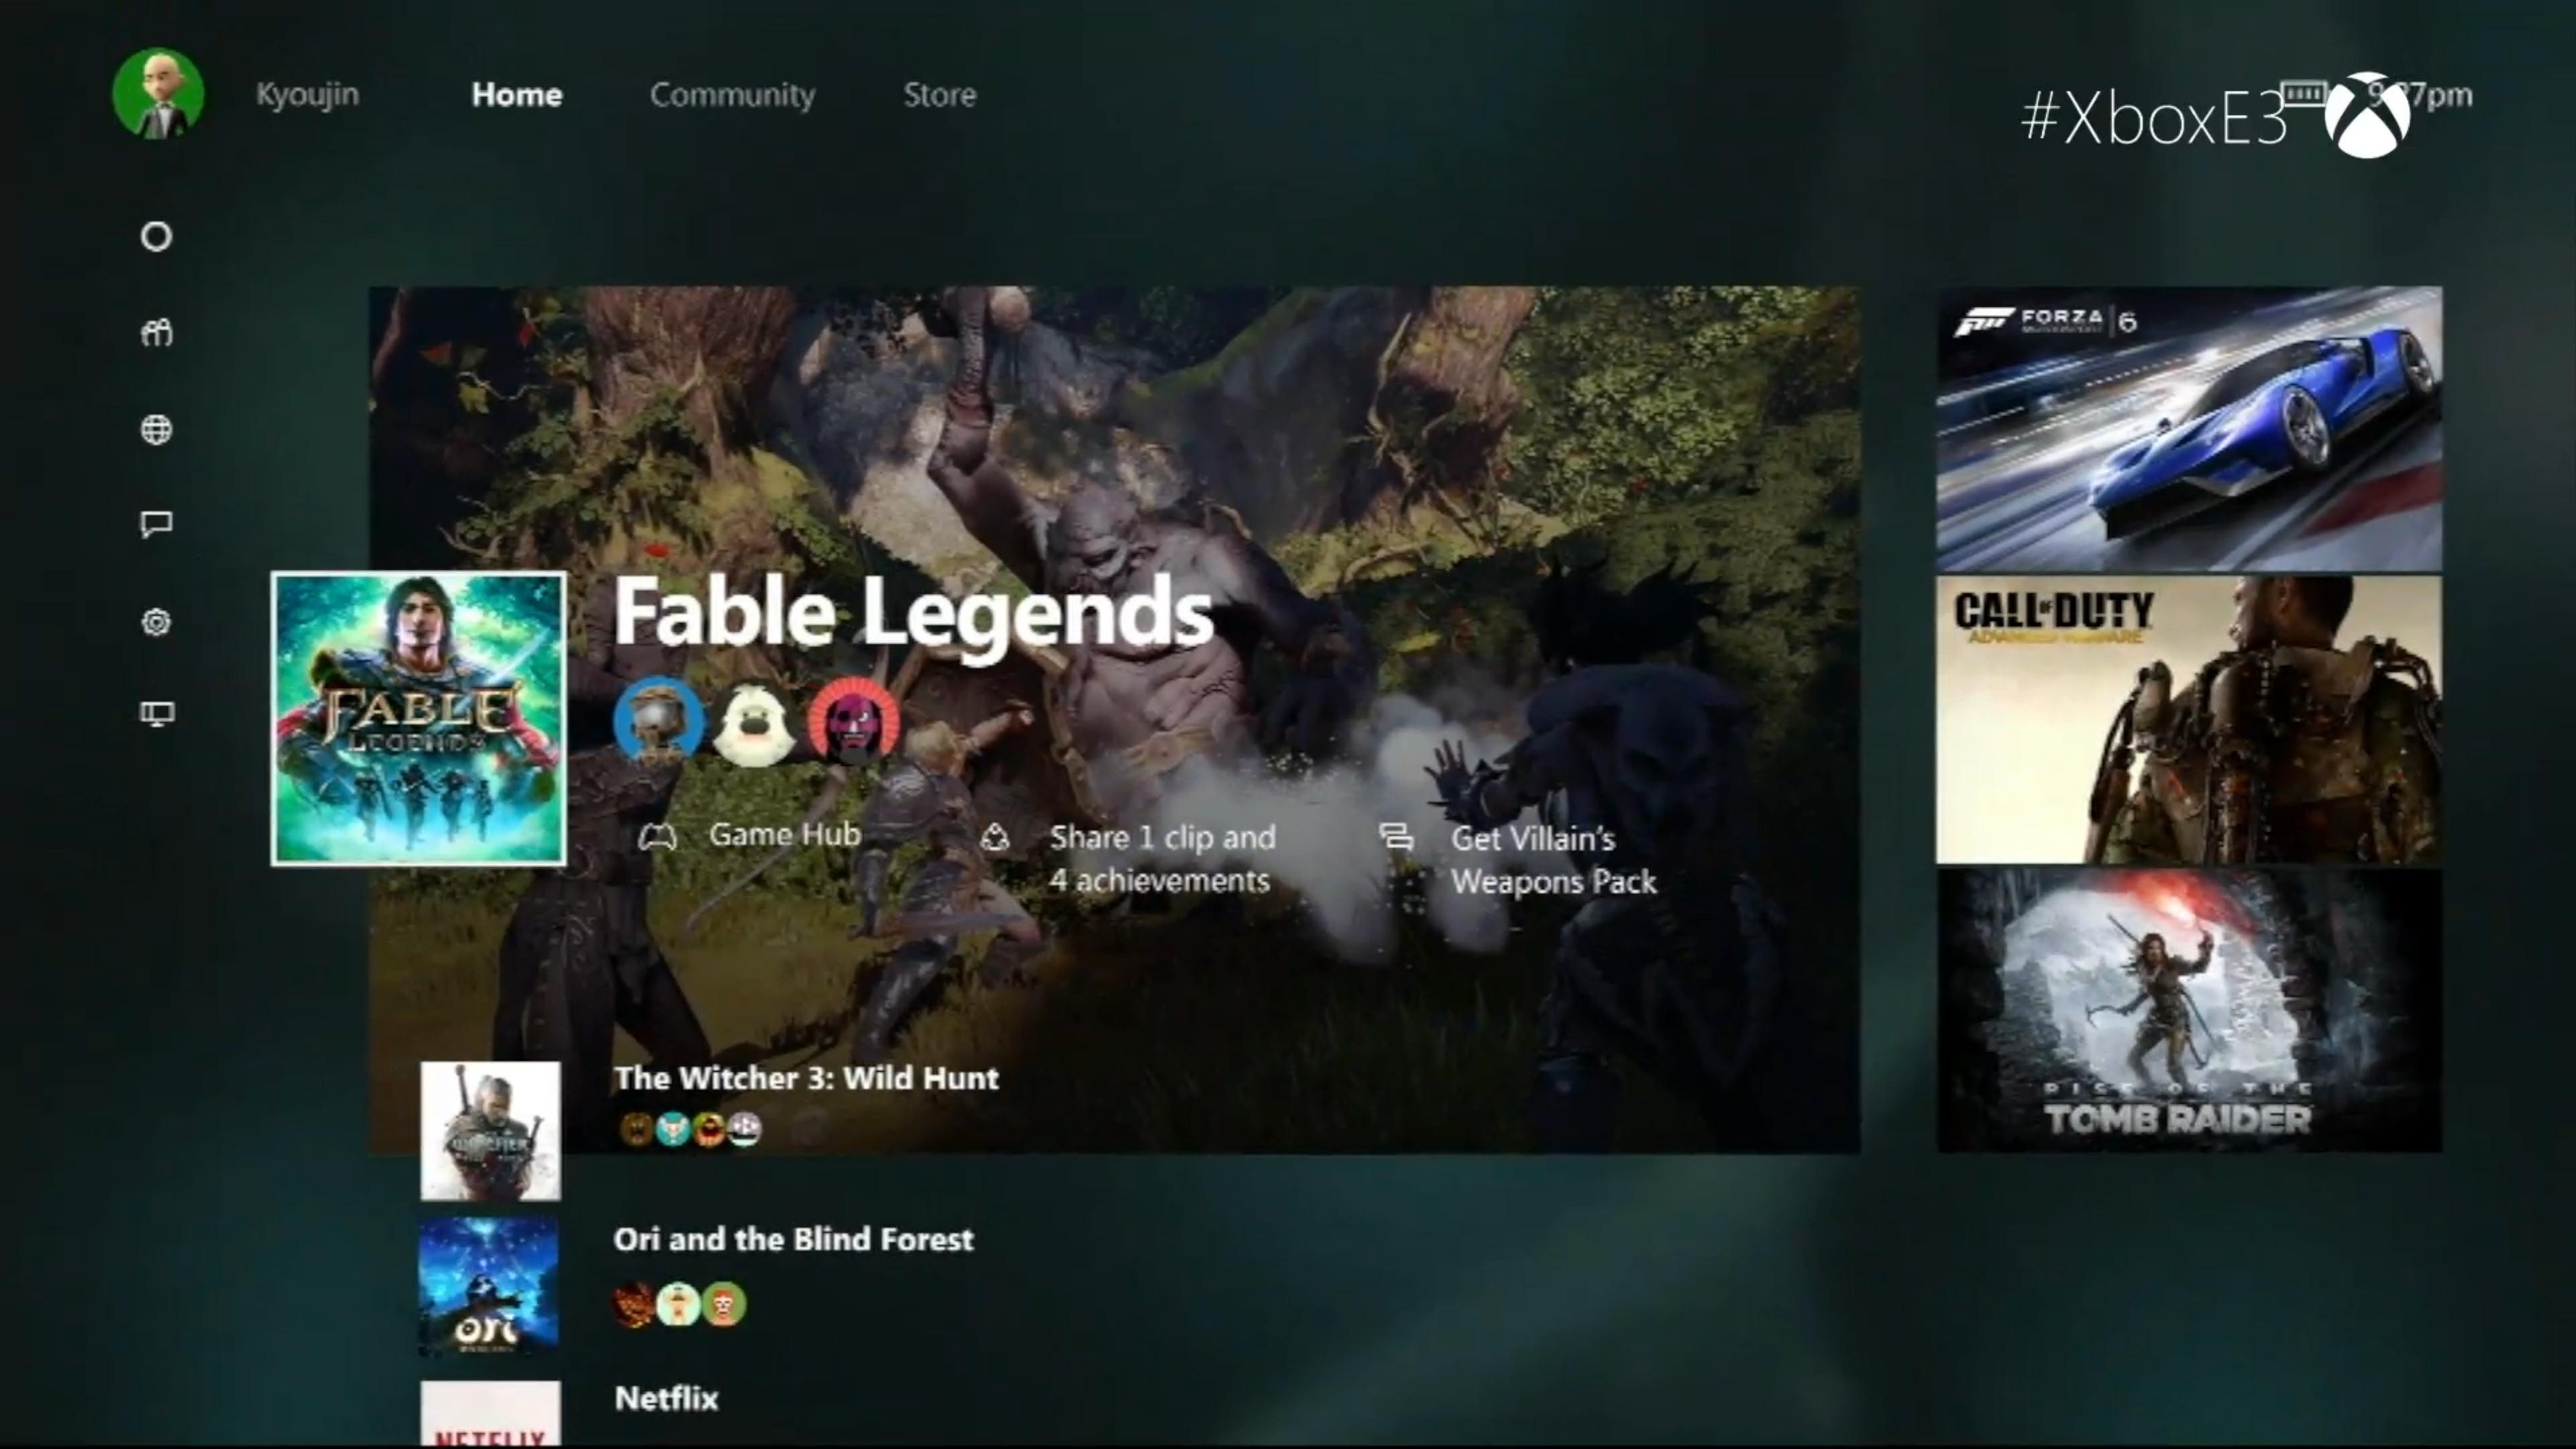 The new Xbox One UI, shown at E3.